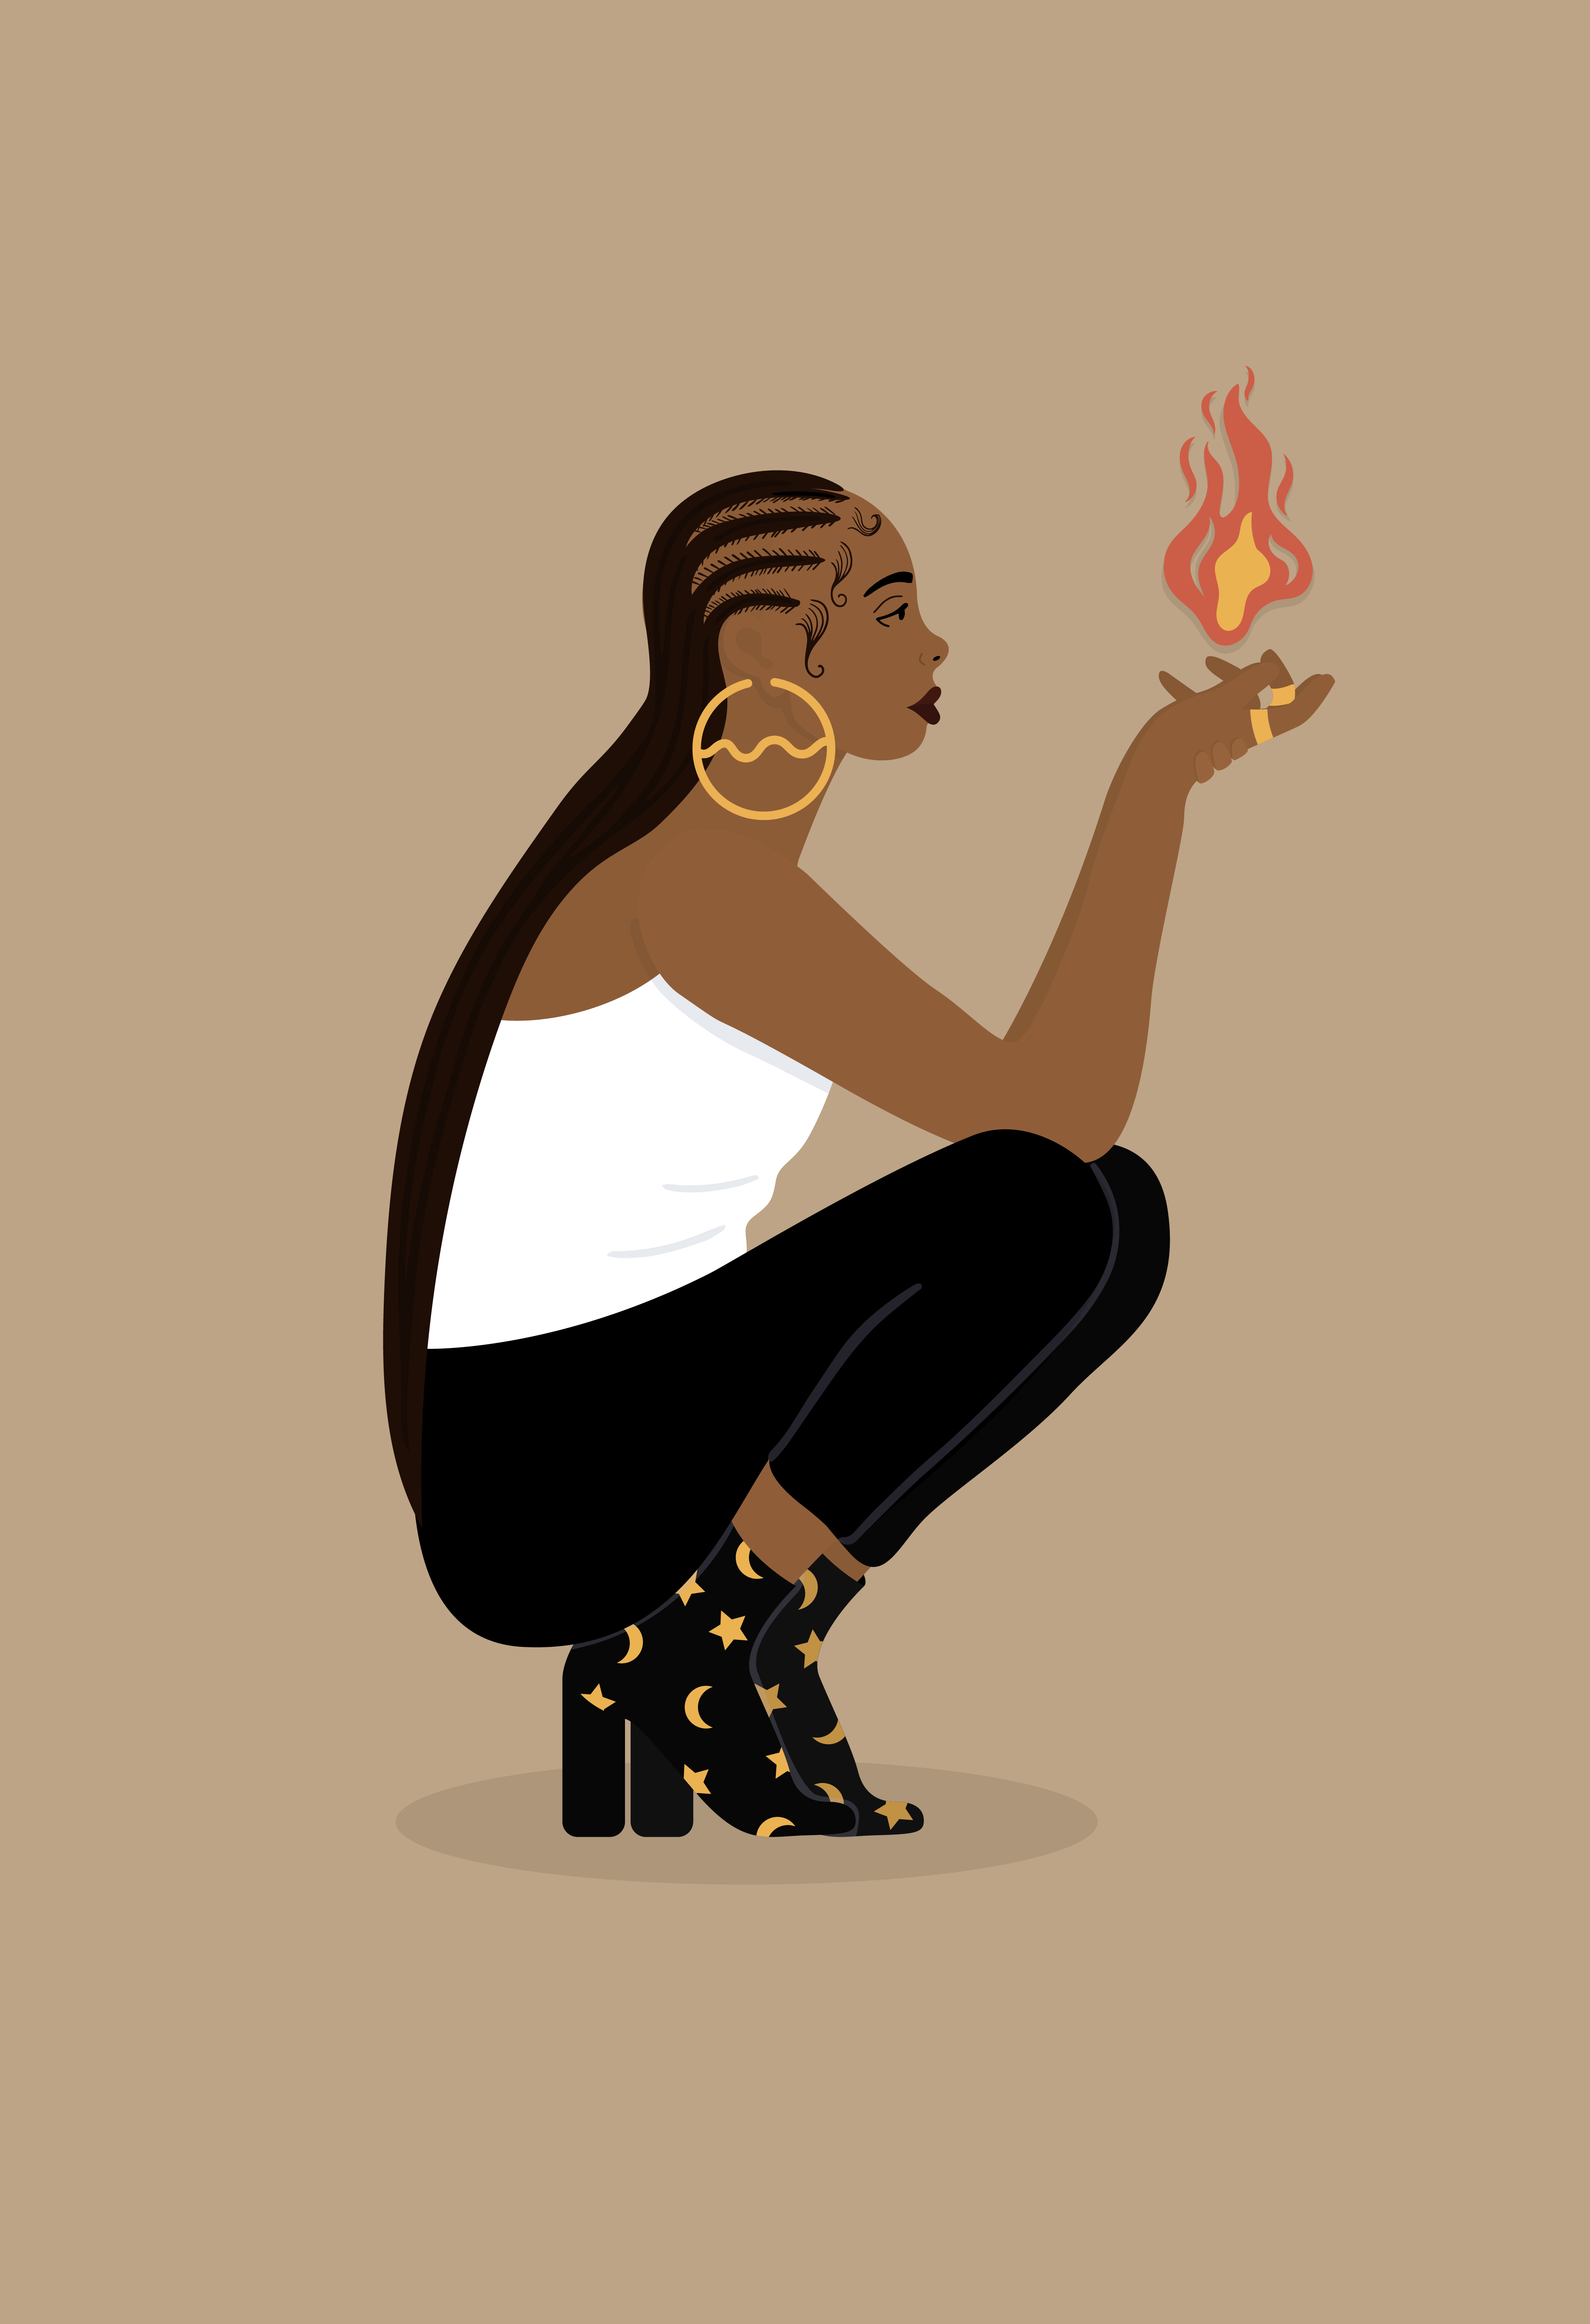 A woman crouches on the ground facing the right, holding fire in her hands on a brown background.